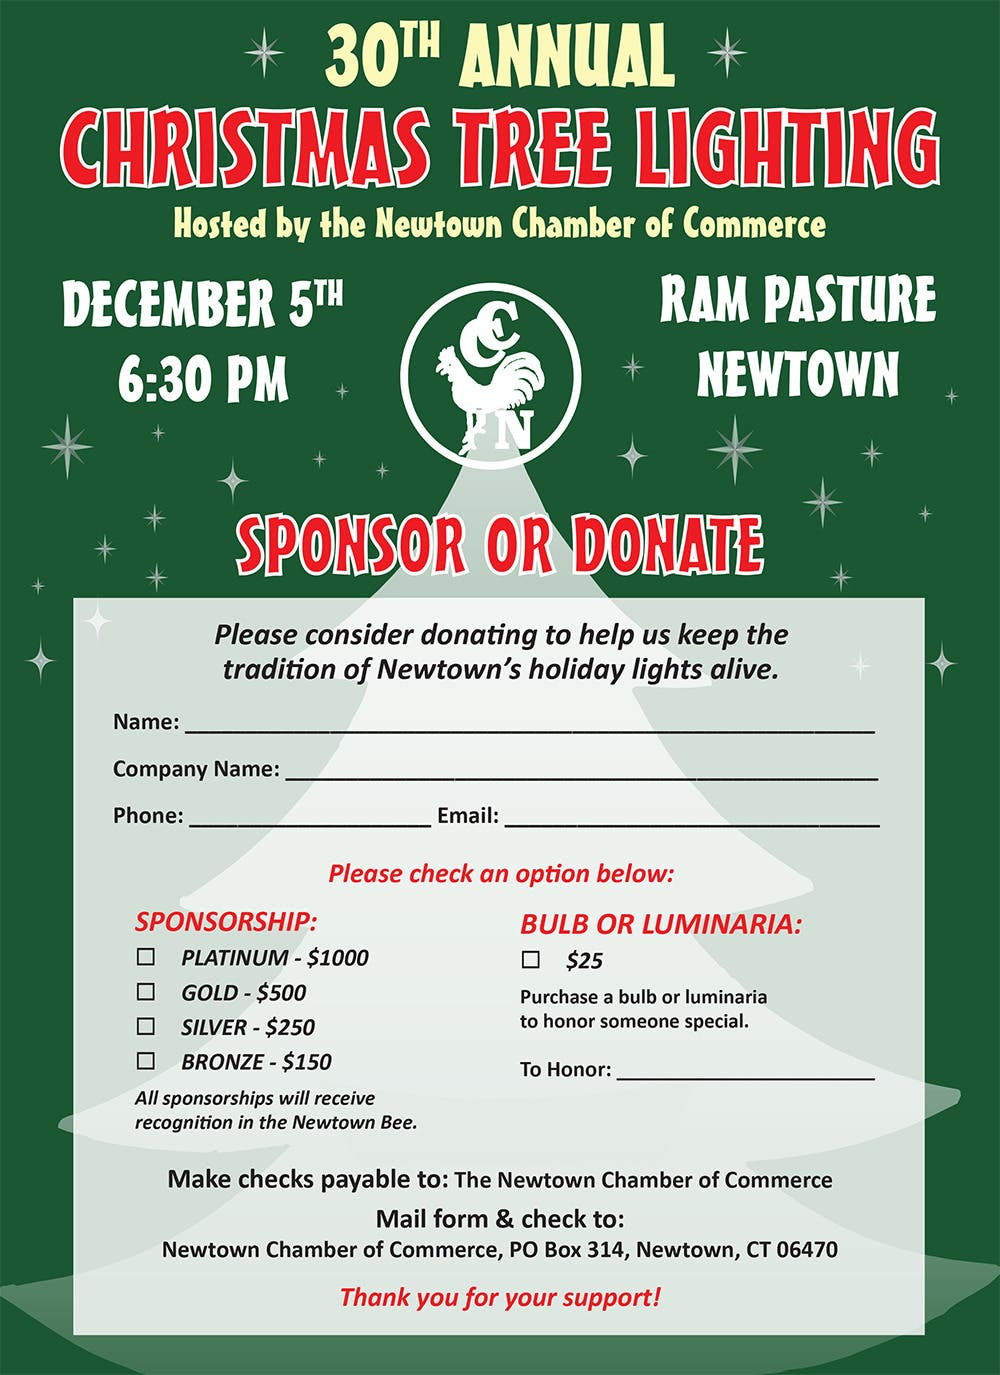 Christmas Lights Newtown, Ct 2020 Help Light Up the Town at the 30th Annual Christmas Tree Lighting